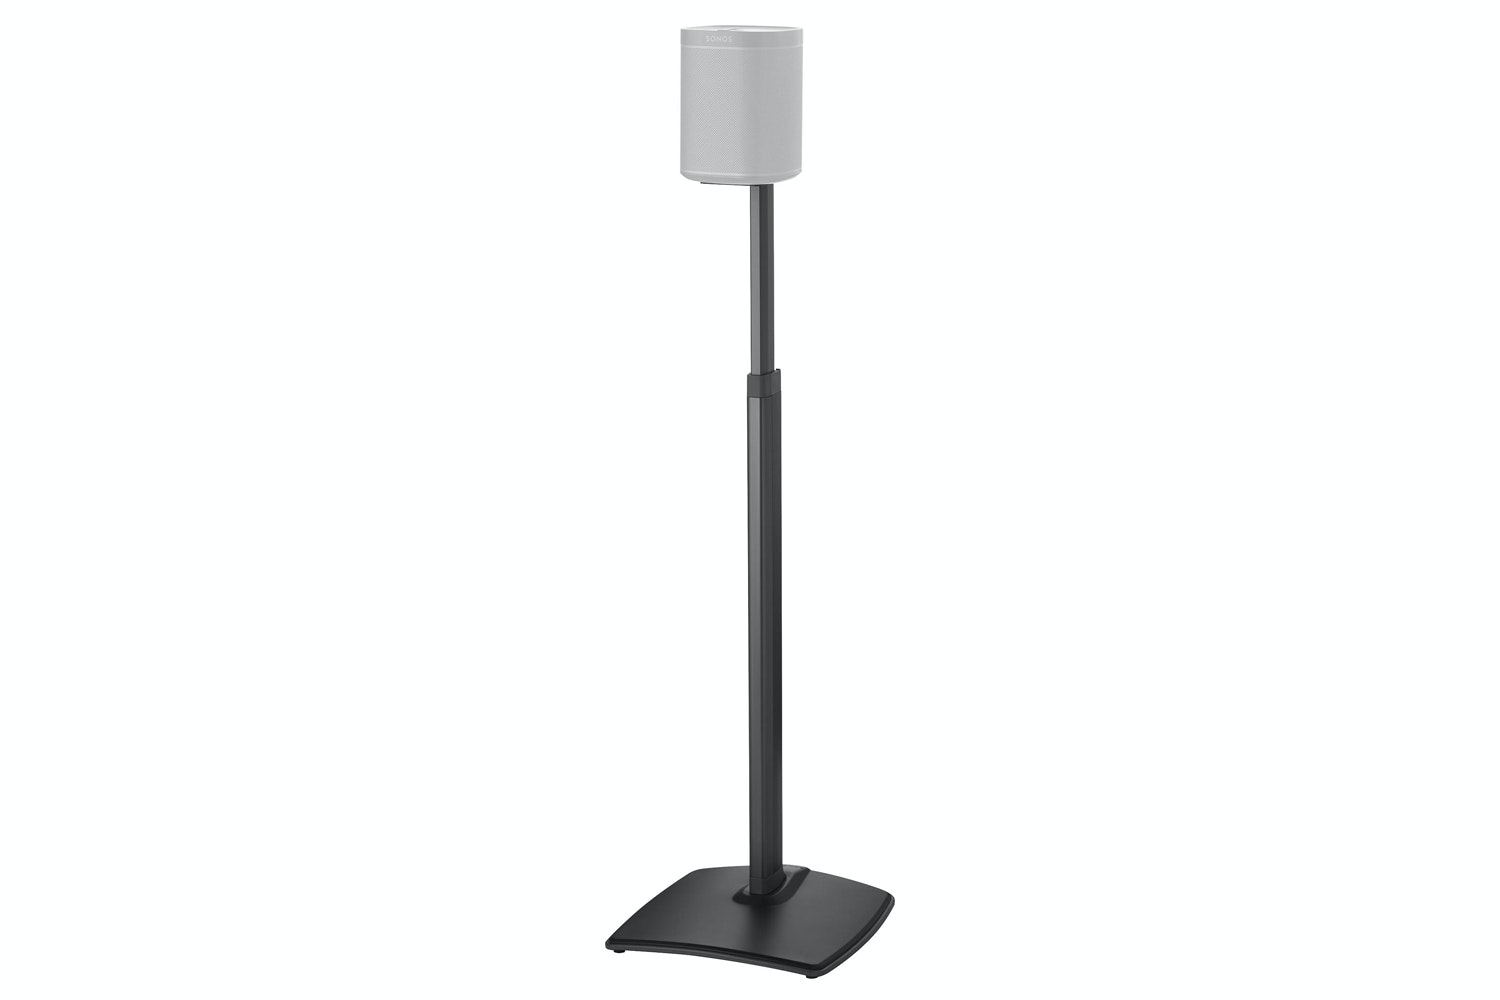 Adjustable Height Wireless Speaker Stands designed for SONOS ONE, Play:1, and Play:3